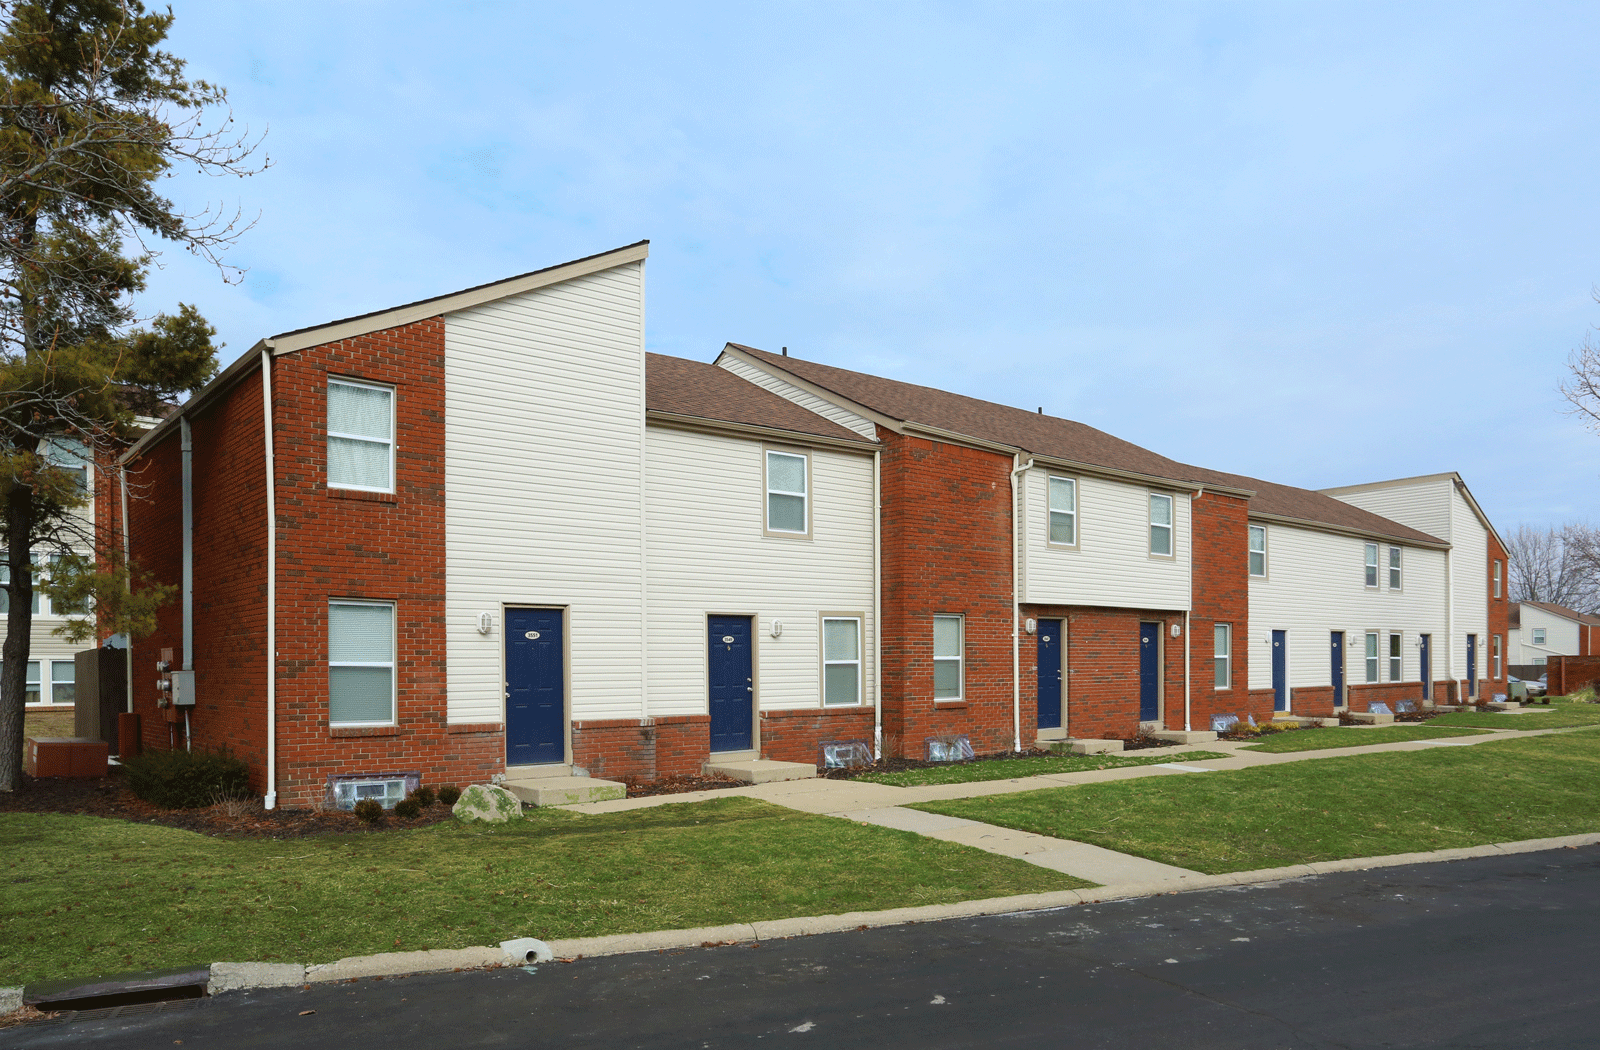 Hilliard village apartments in columbus oh - One bedroom apartments hilliard ohio ...